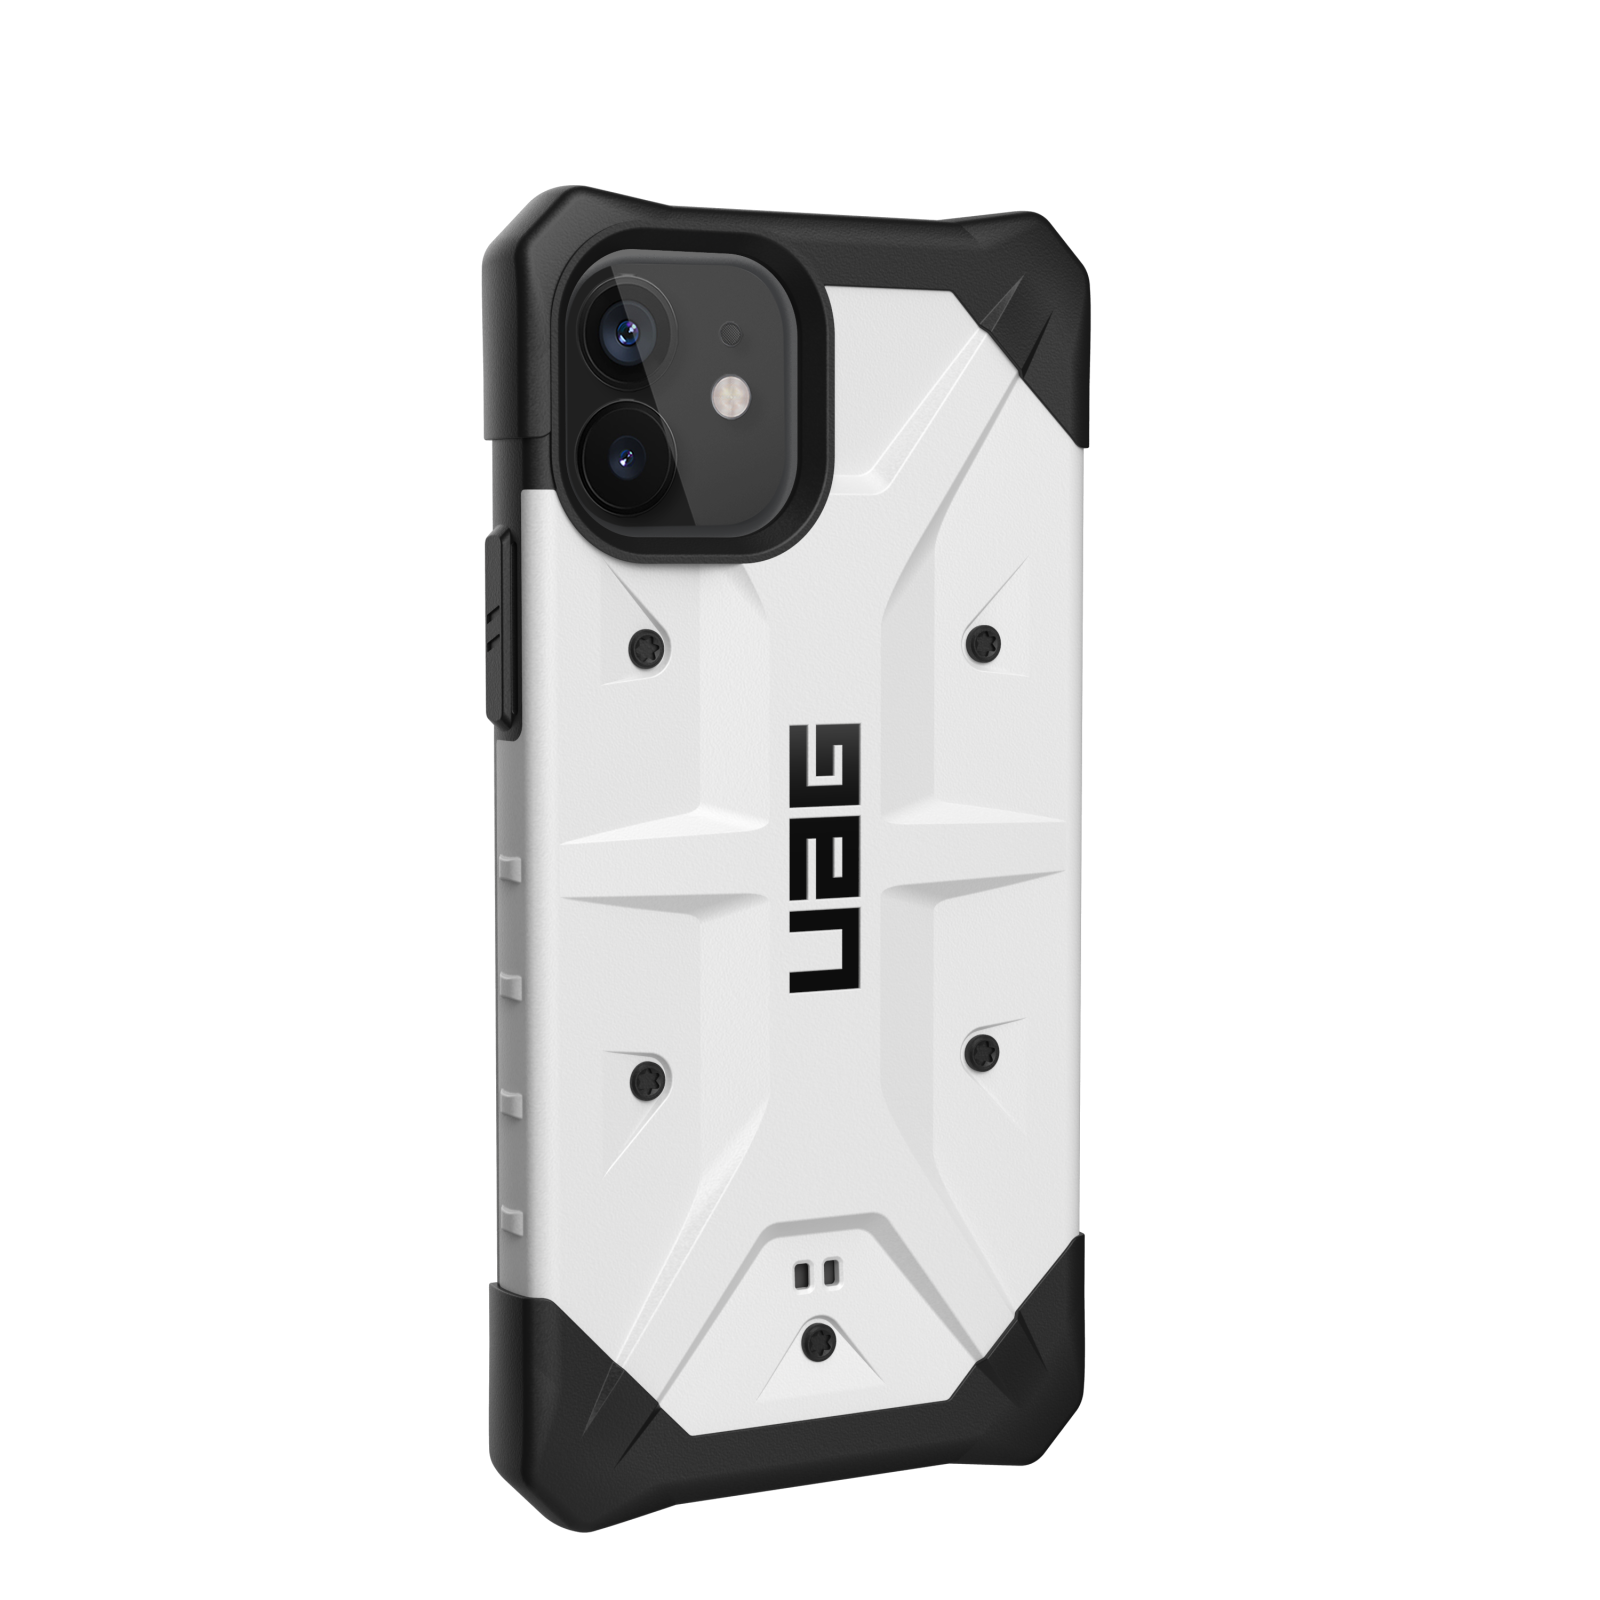 ỐP LƯNG UAG PATHFINDER CHO IPHONE 12  [6.1-INCH] - White